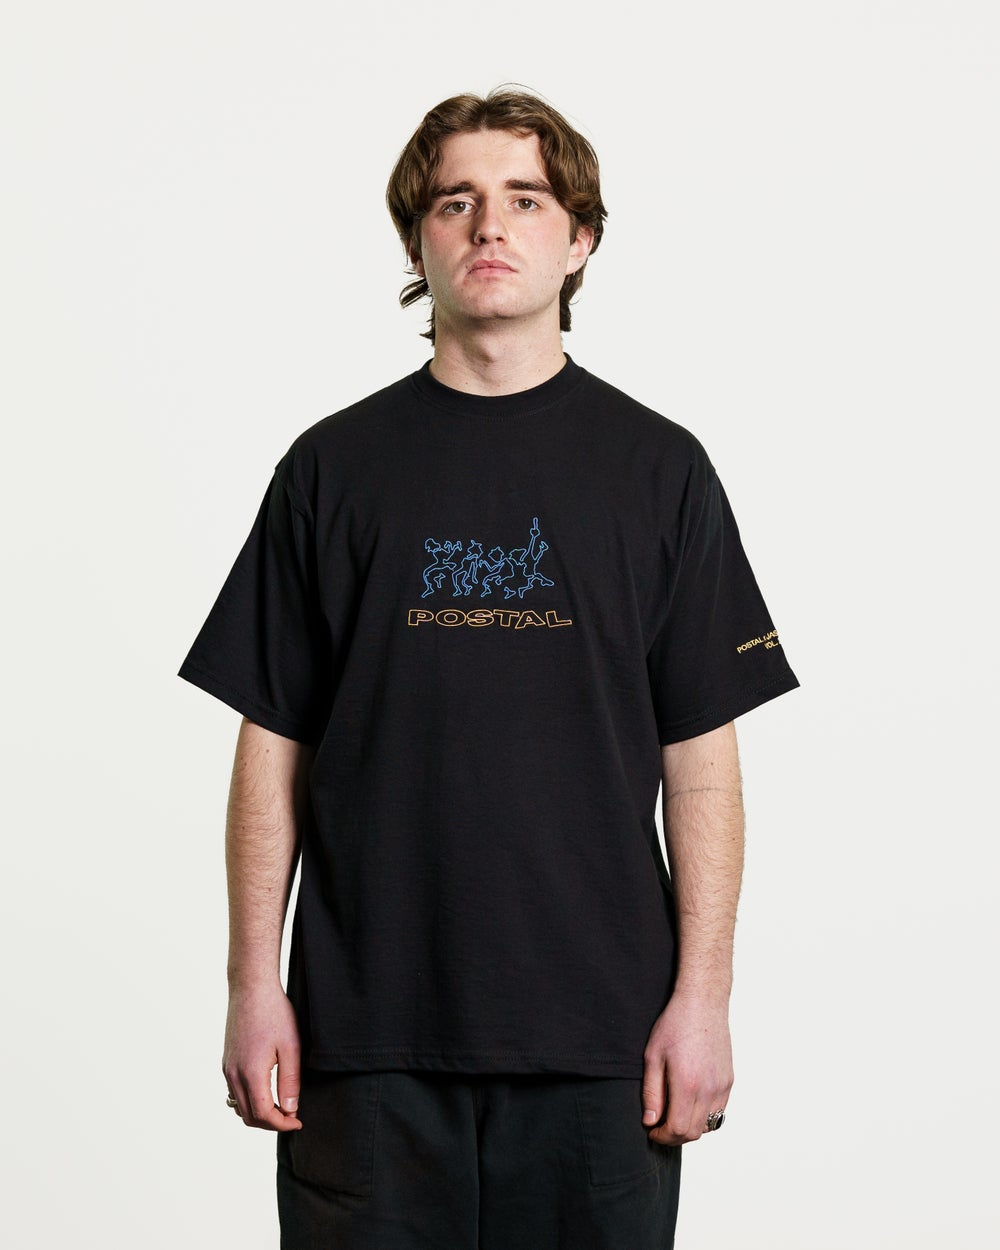 Postal x Jasper James Vol.2 'Dannsa' Dancefloor Tee Black